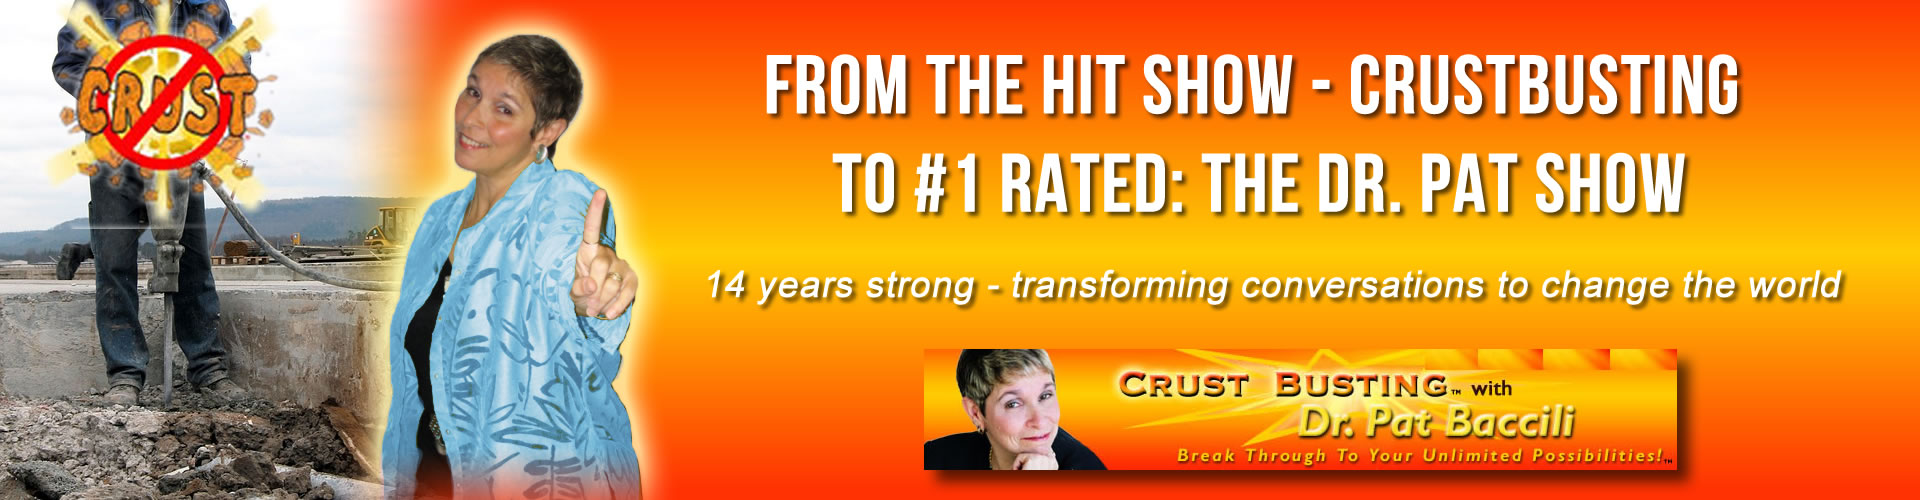 Dr. Pat Baccili Crustbusting Your Way to an Awesome Life